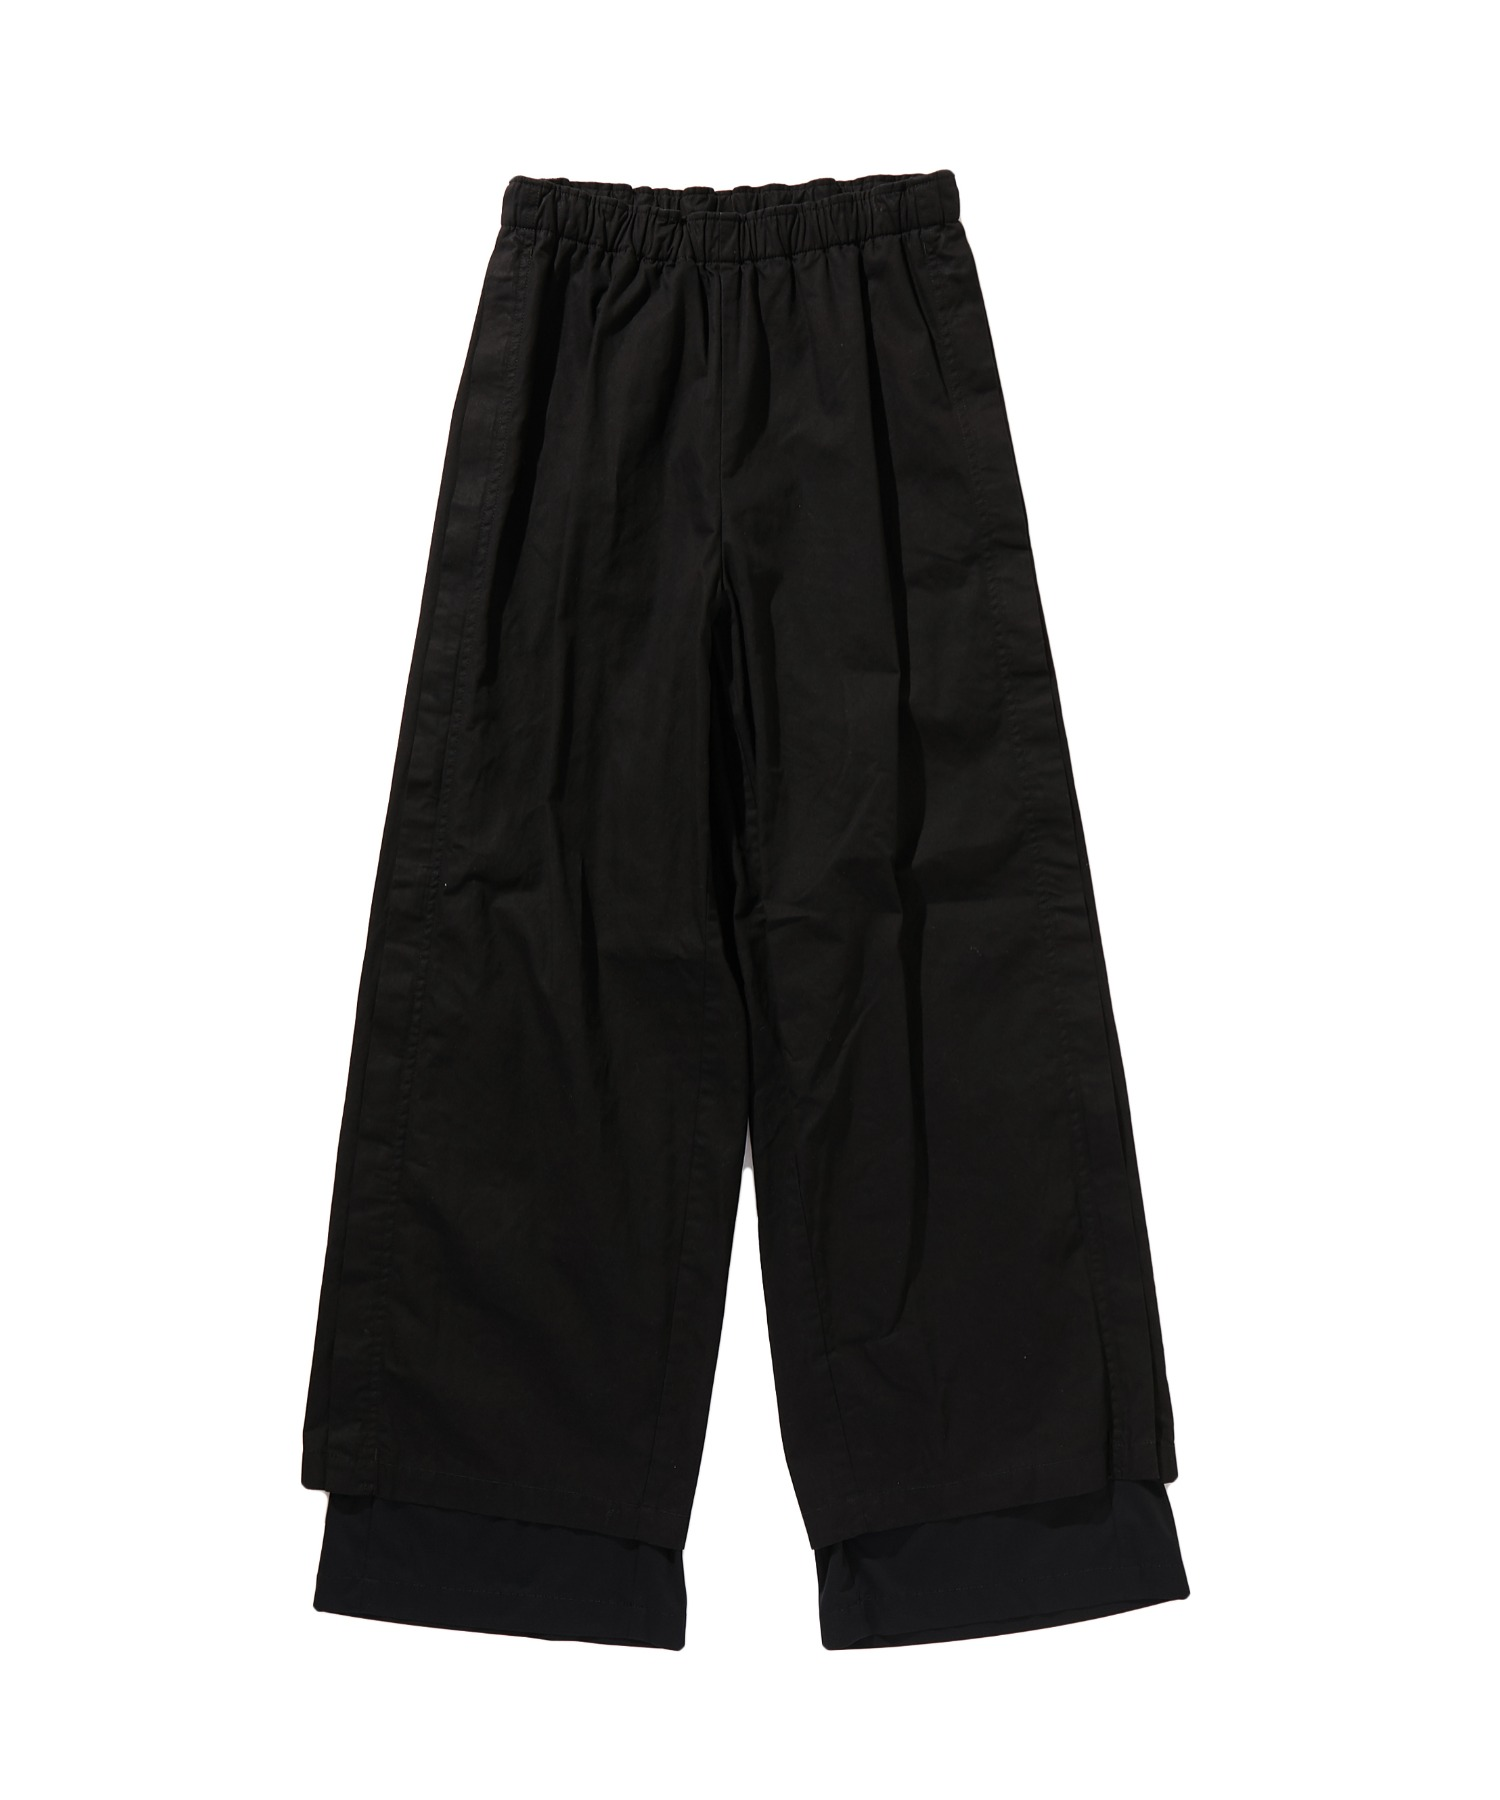 SPRING2020 LAYERED WIDE EASY PANTS